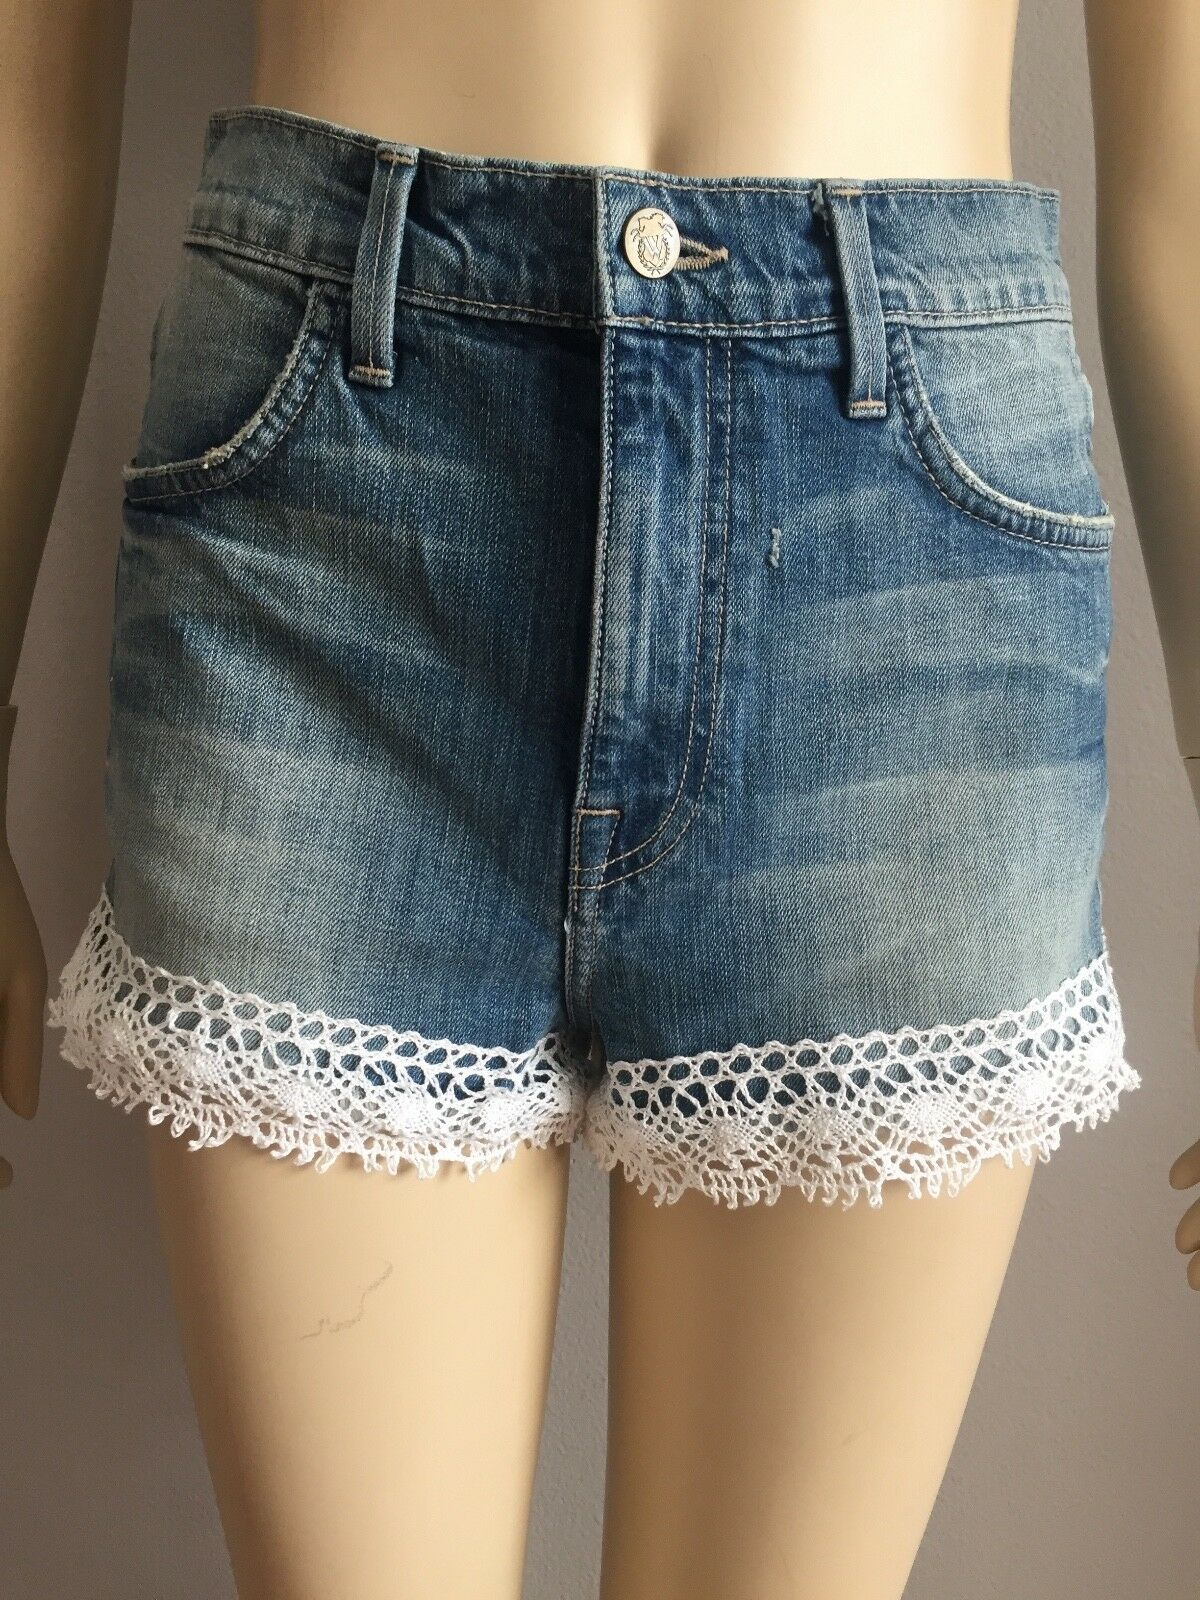 1c1825d1afc NWT Wildfox Jean Denim Shorts Mid Rise with Lace SZ 27 opwsew4562 ...